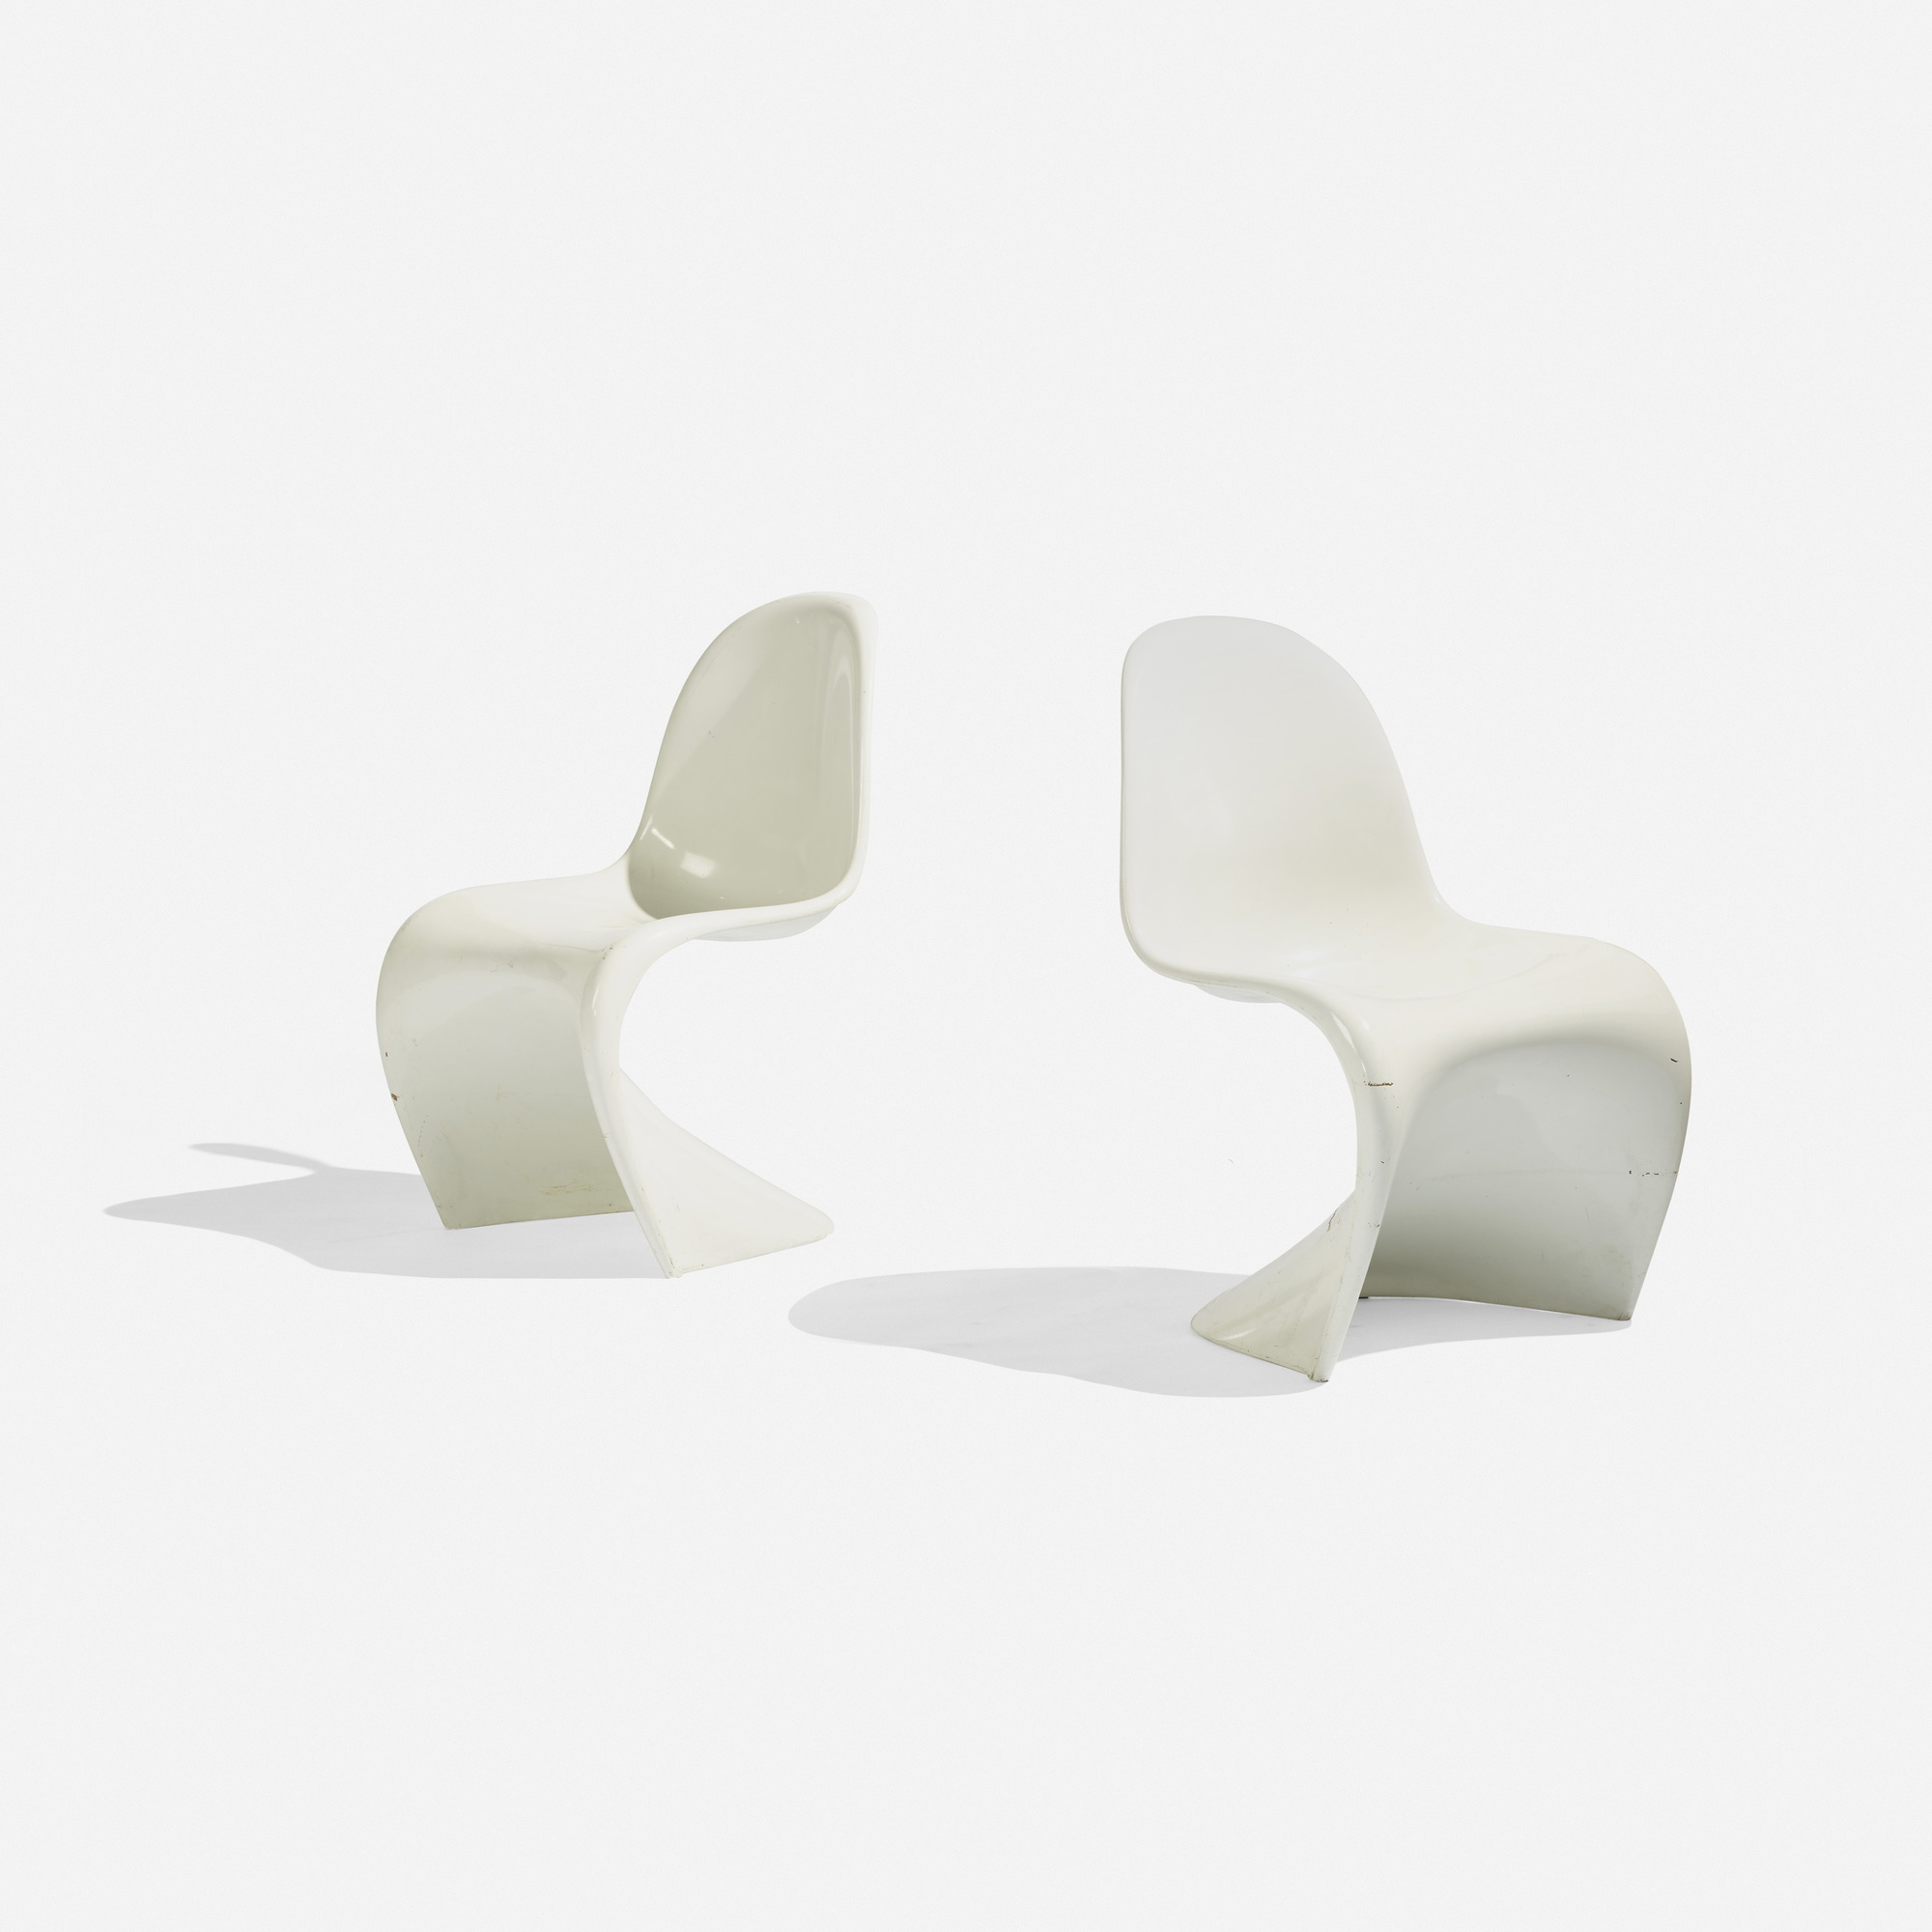 246 Verner Panton Panton chairs pair Scandinavian Design 18